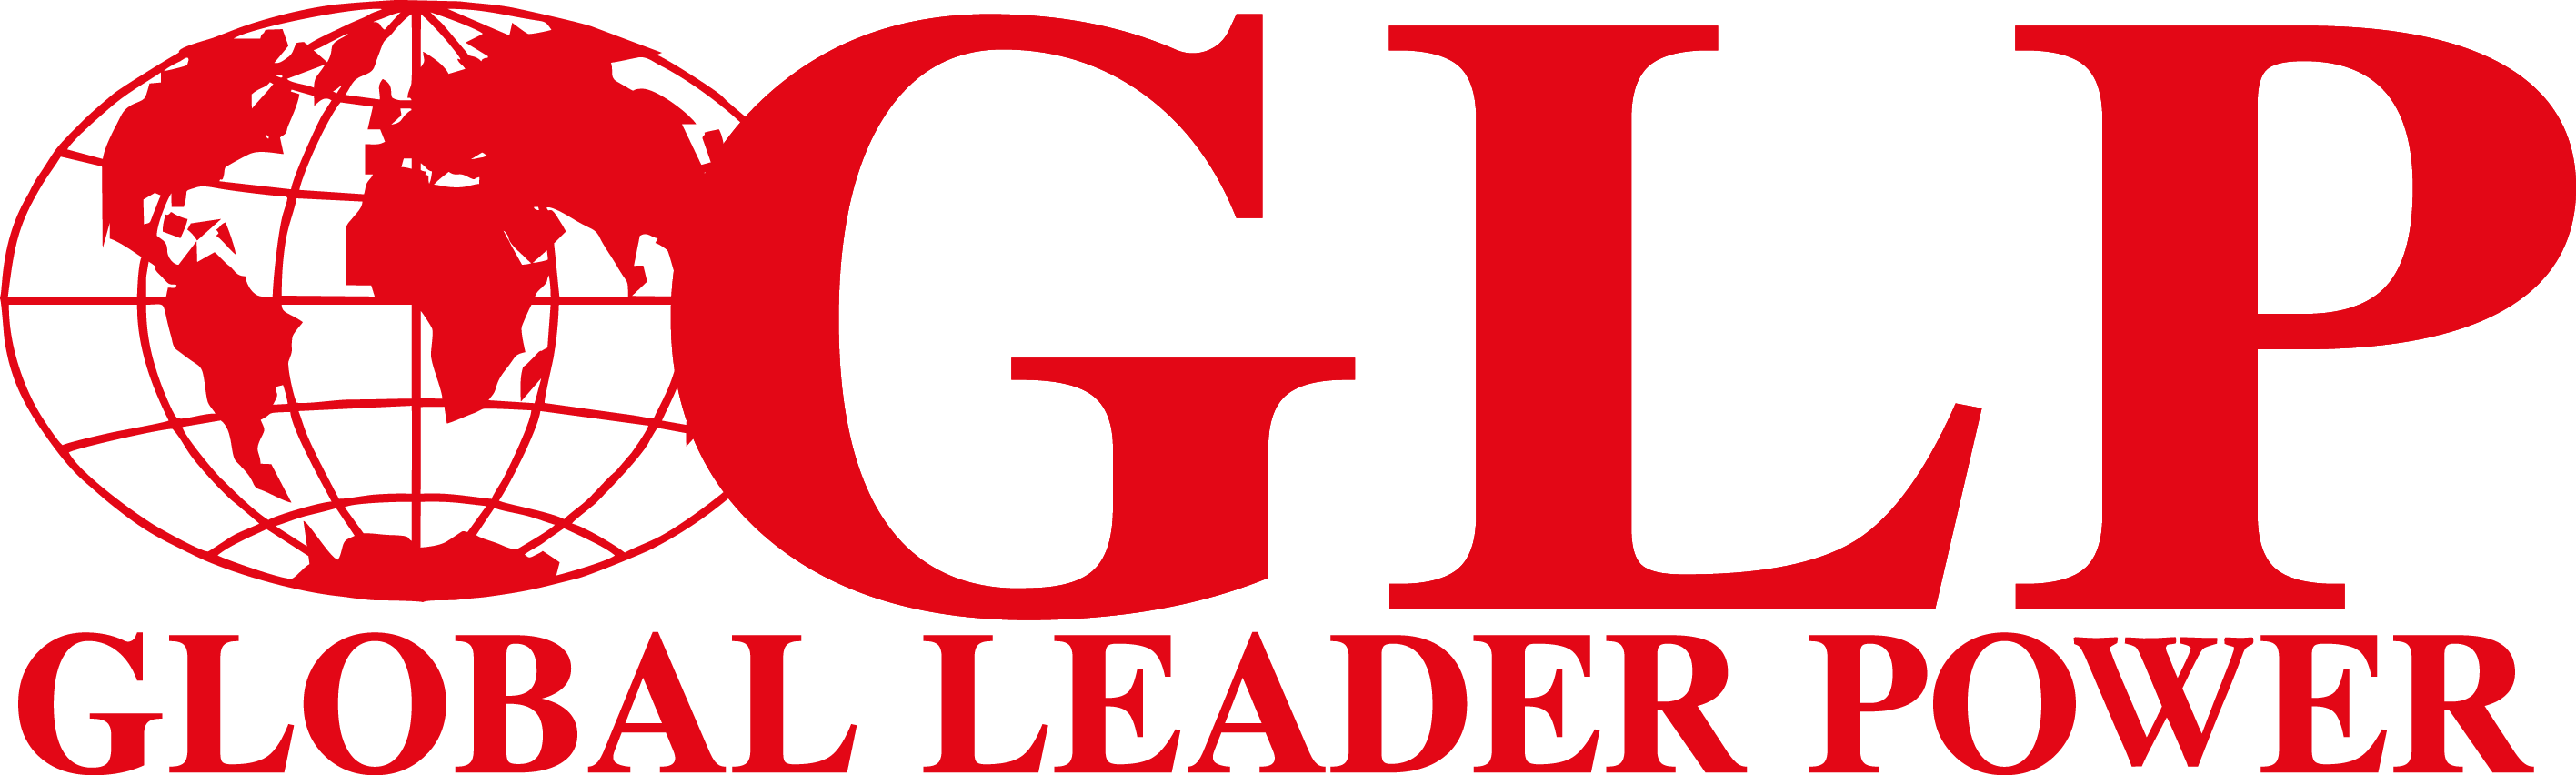 Global Leader Power (GLP)